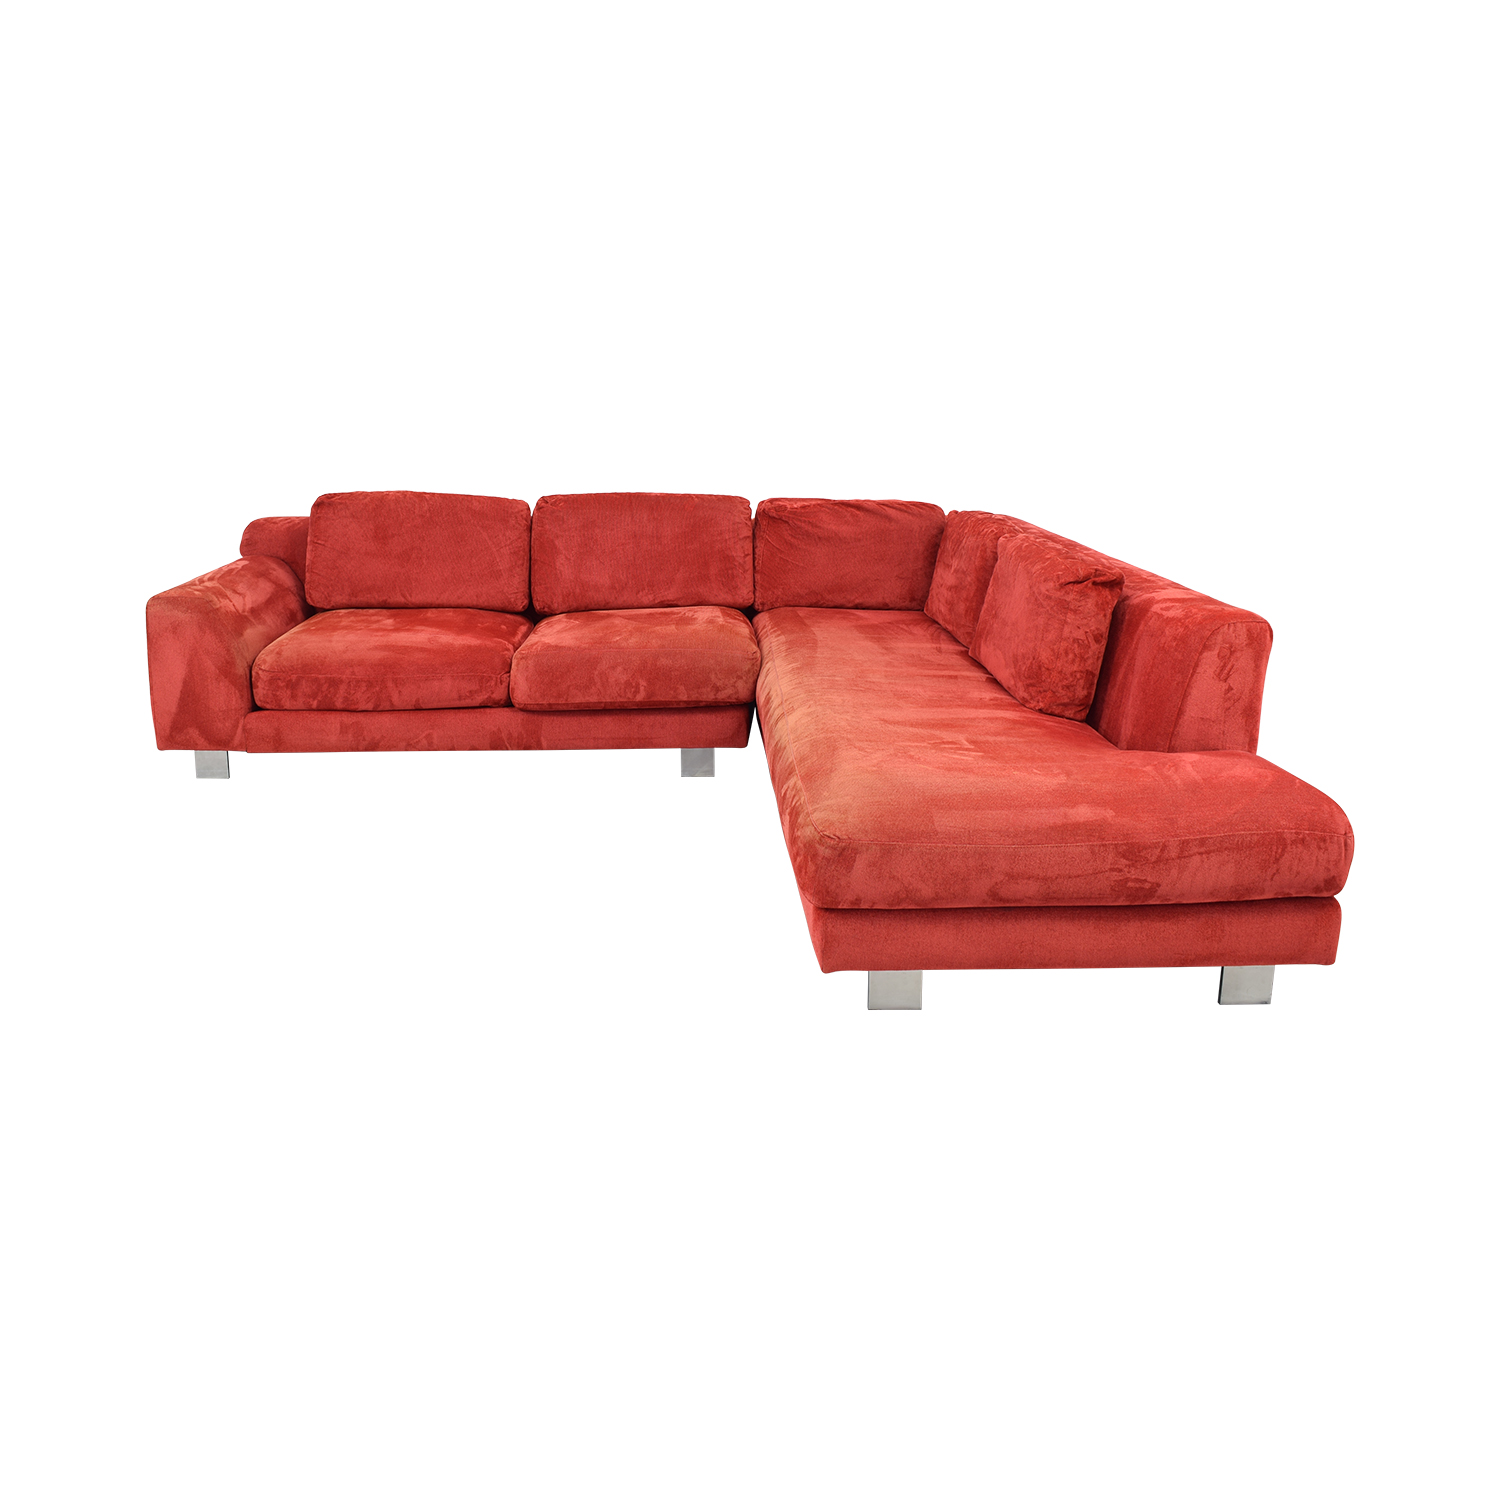 buy Calligaris Calligaris Sectional Sofa online